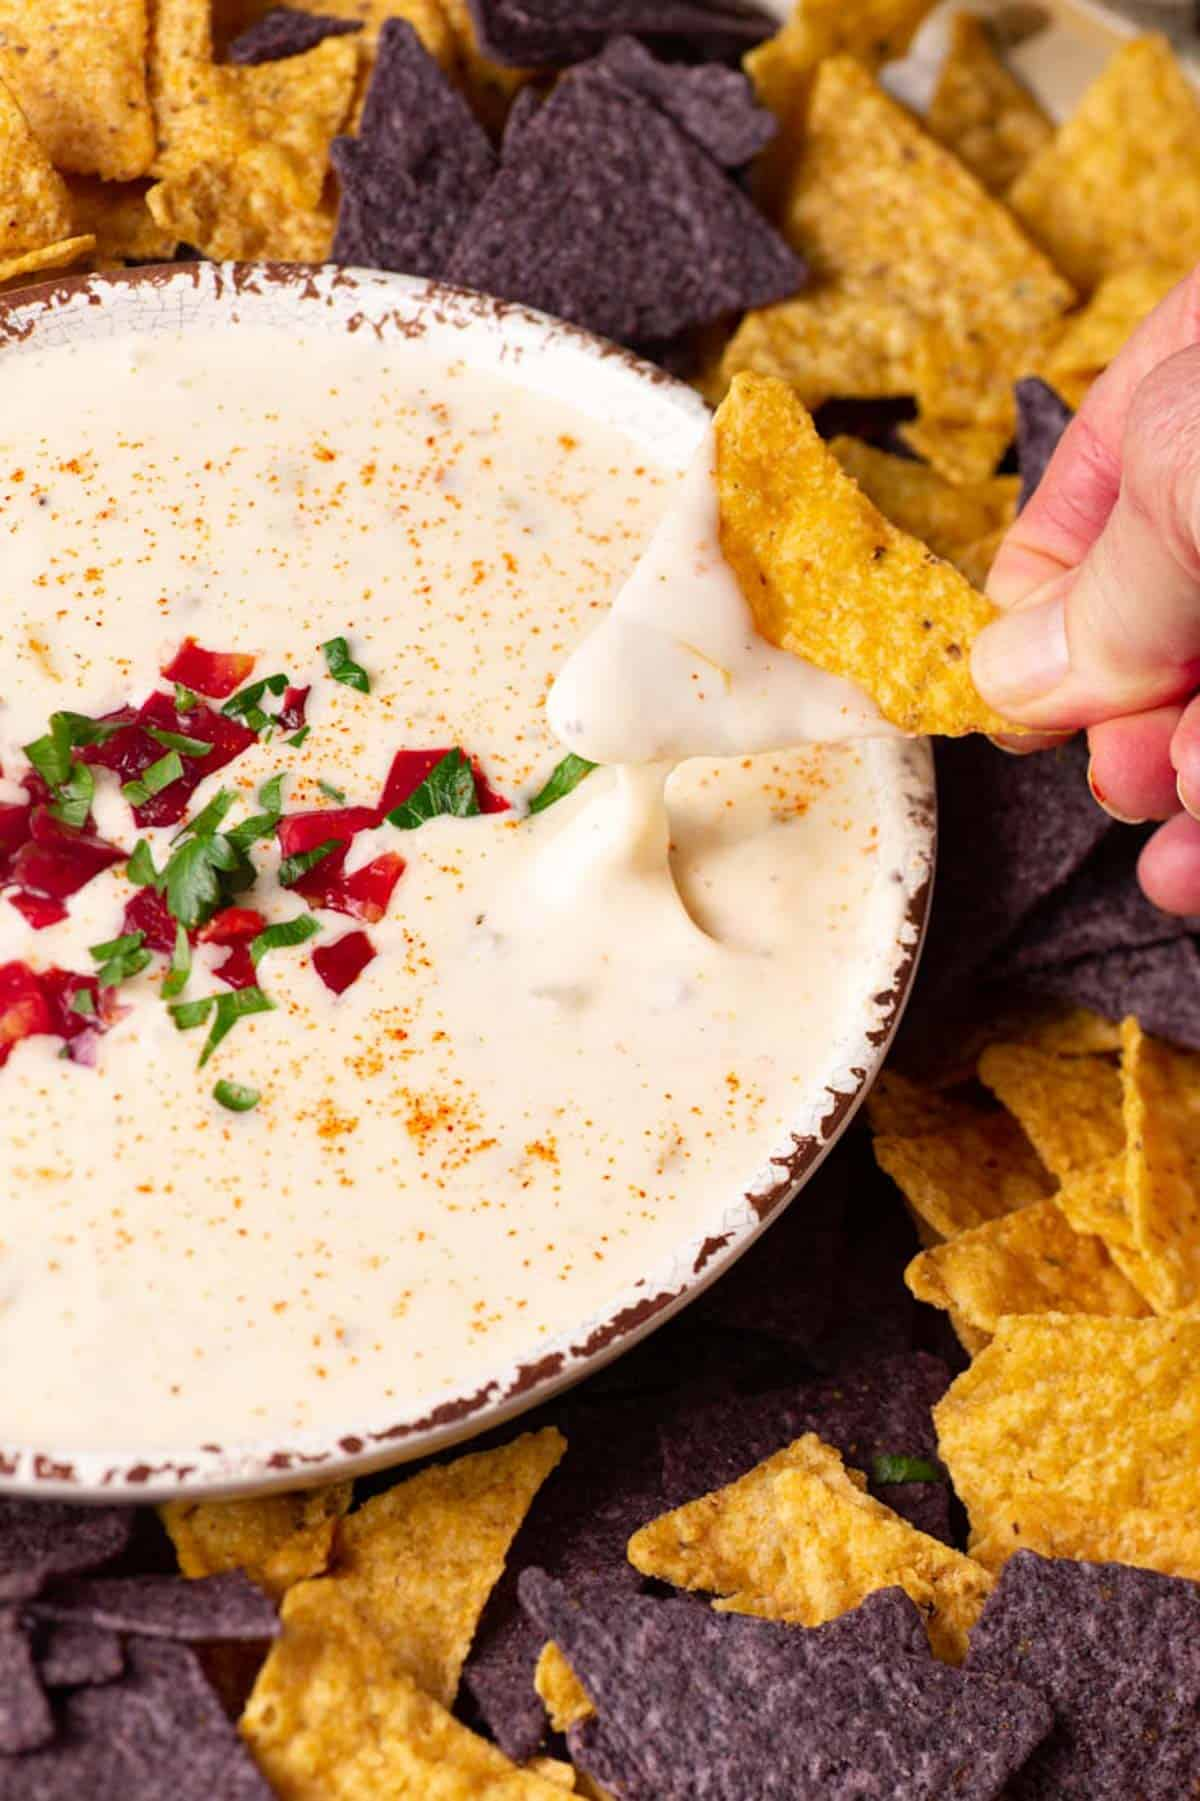 A chip being dipped into white queso dip.